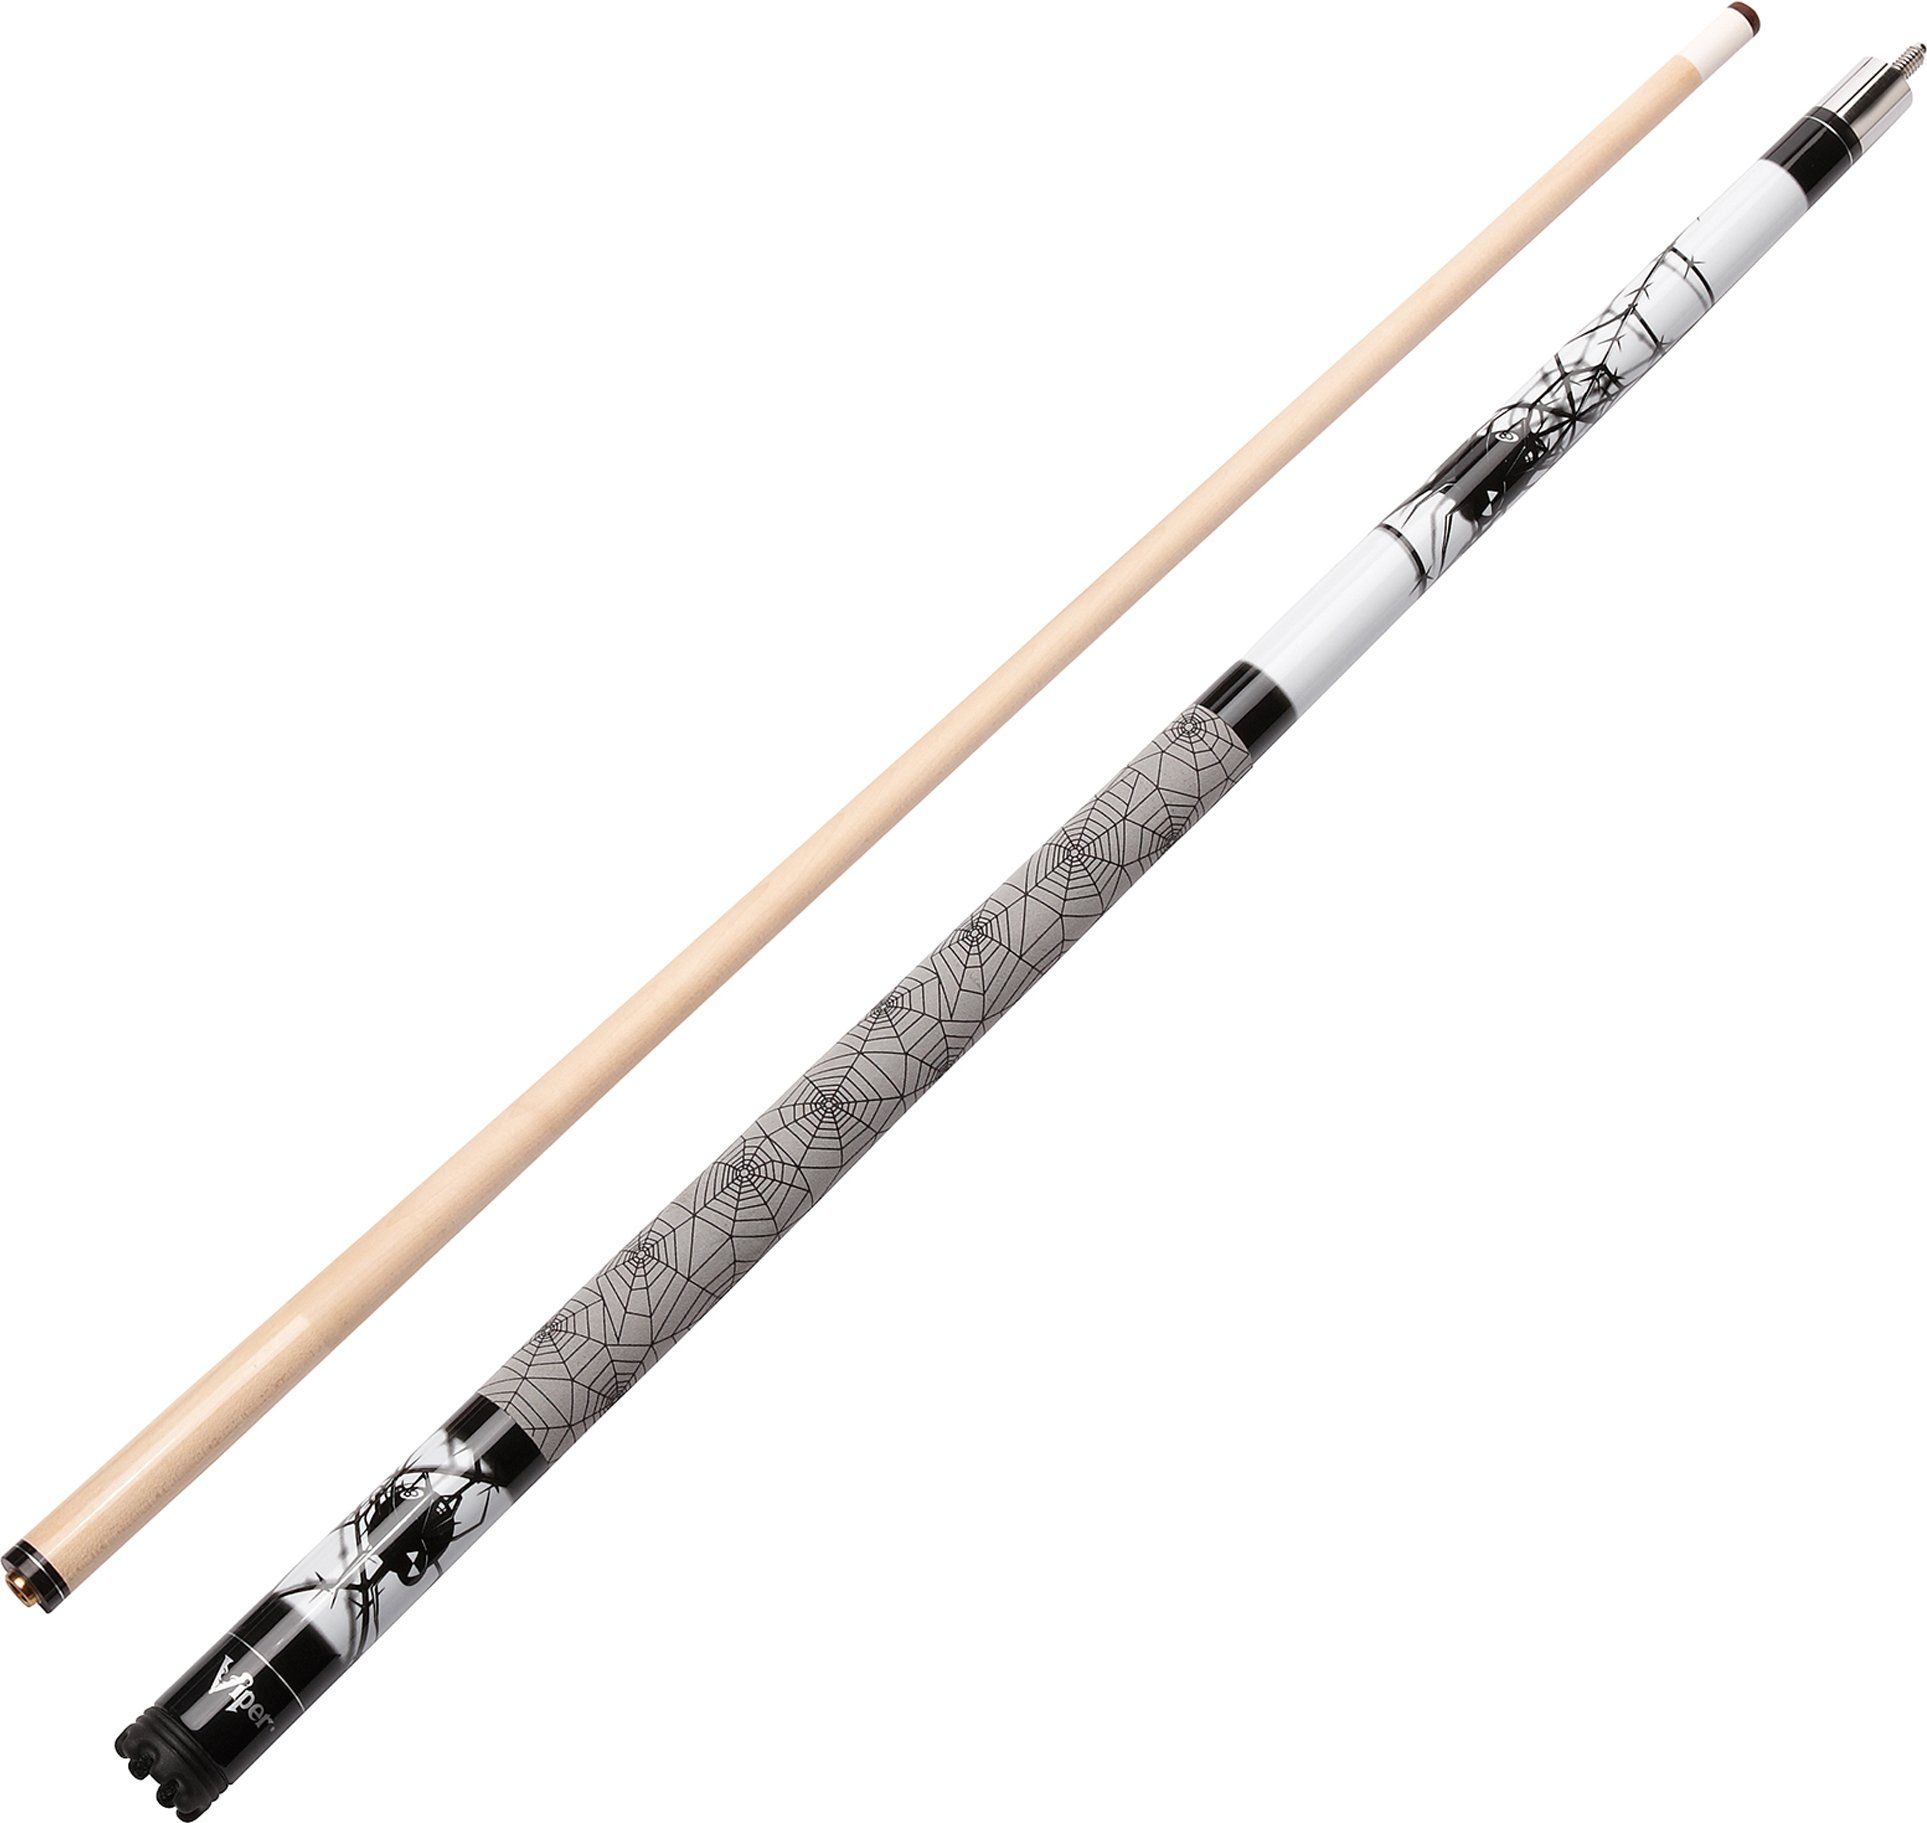 Viper Revolution 58'' 2-Piece Billiard/Pool Cue, Spider, 21 Ounce